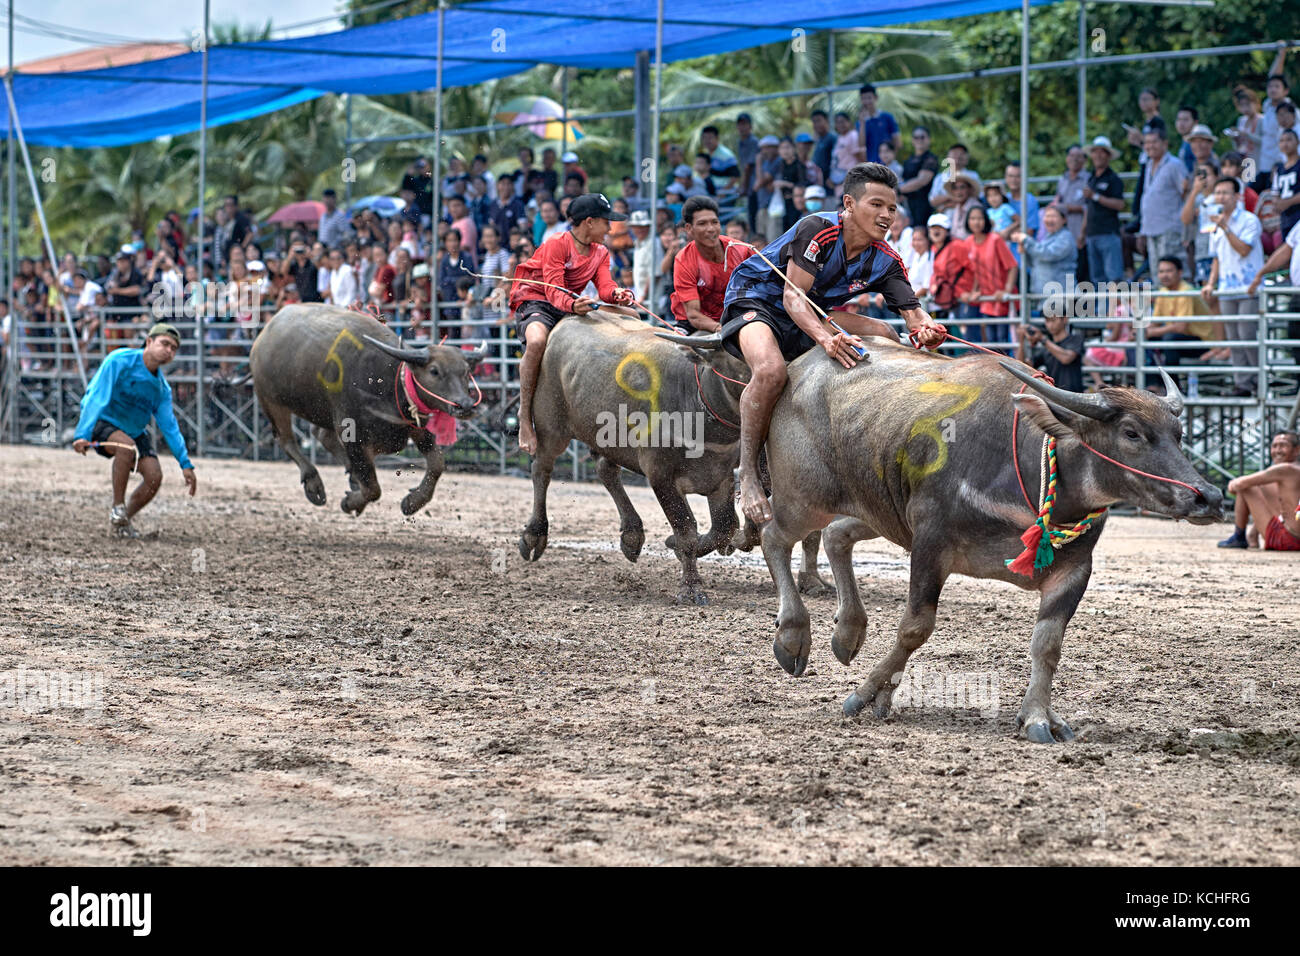 Buffalo racing, Unusual sport, Thailand, Southeast Asia. Asian sporting event. - Stock Image